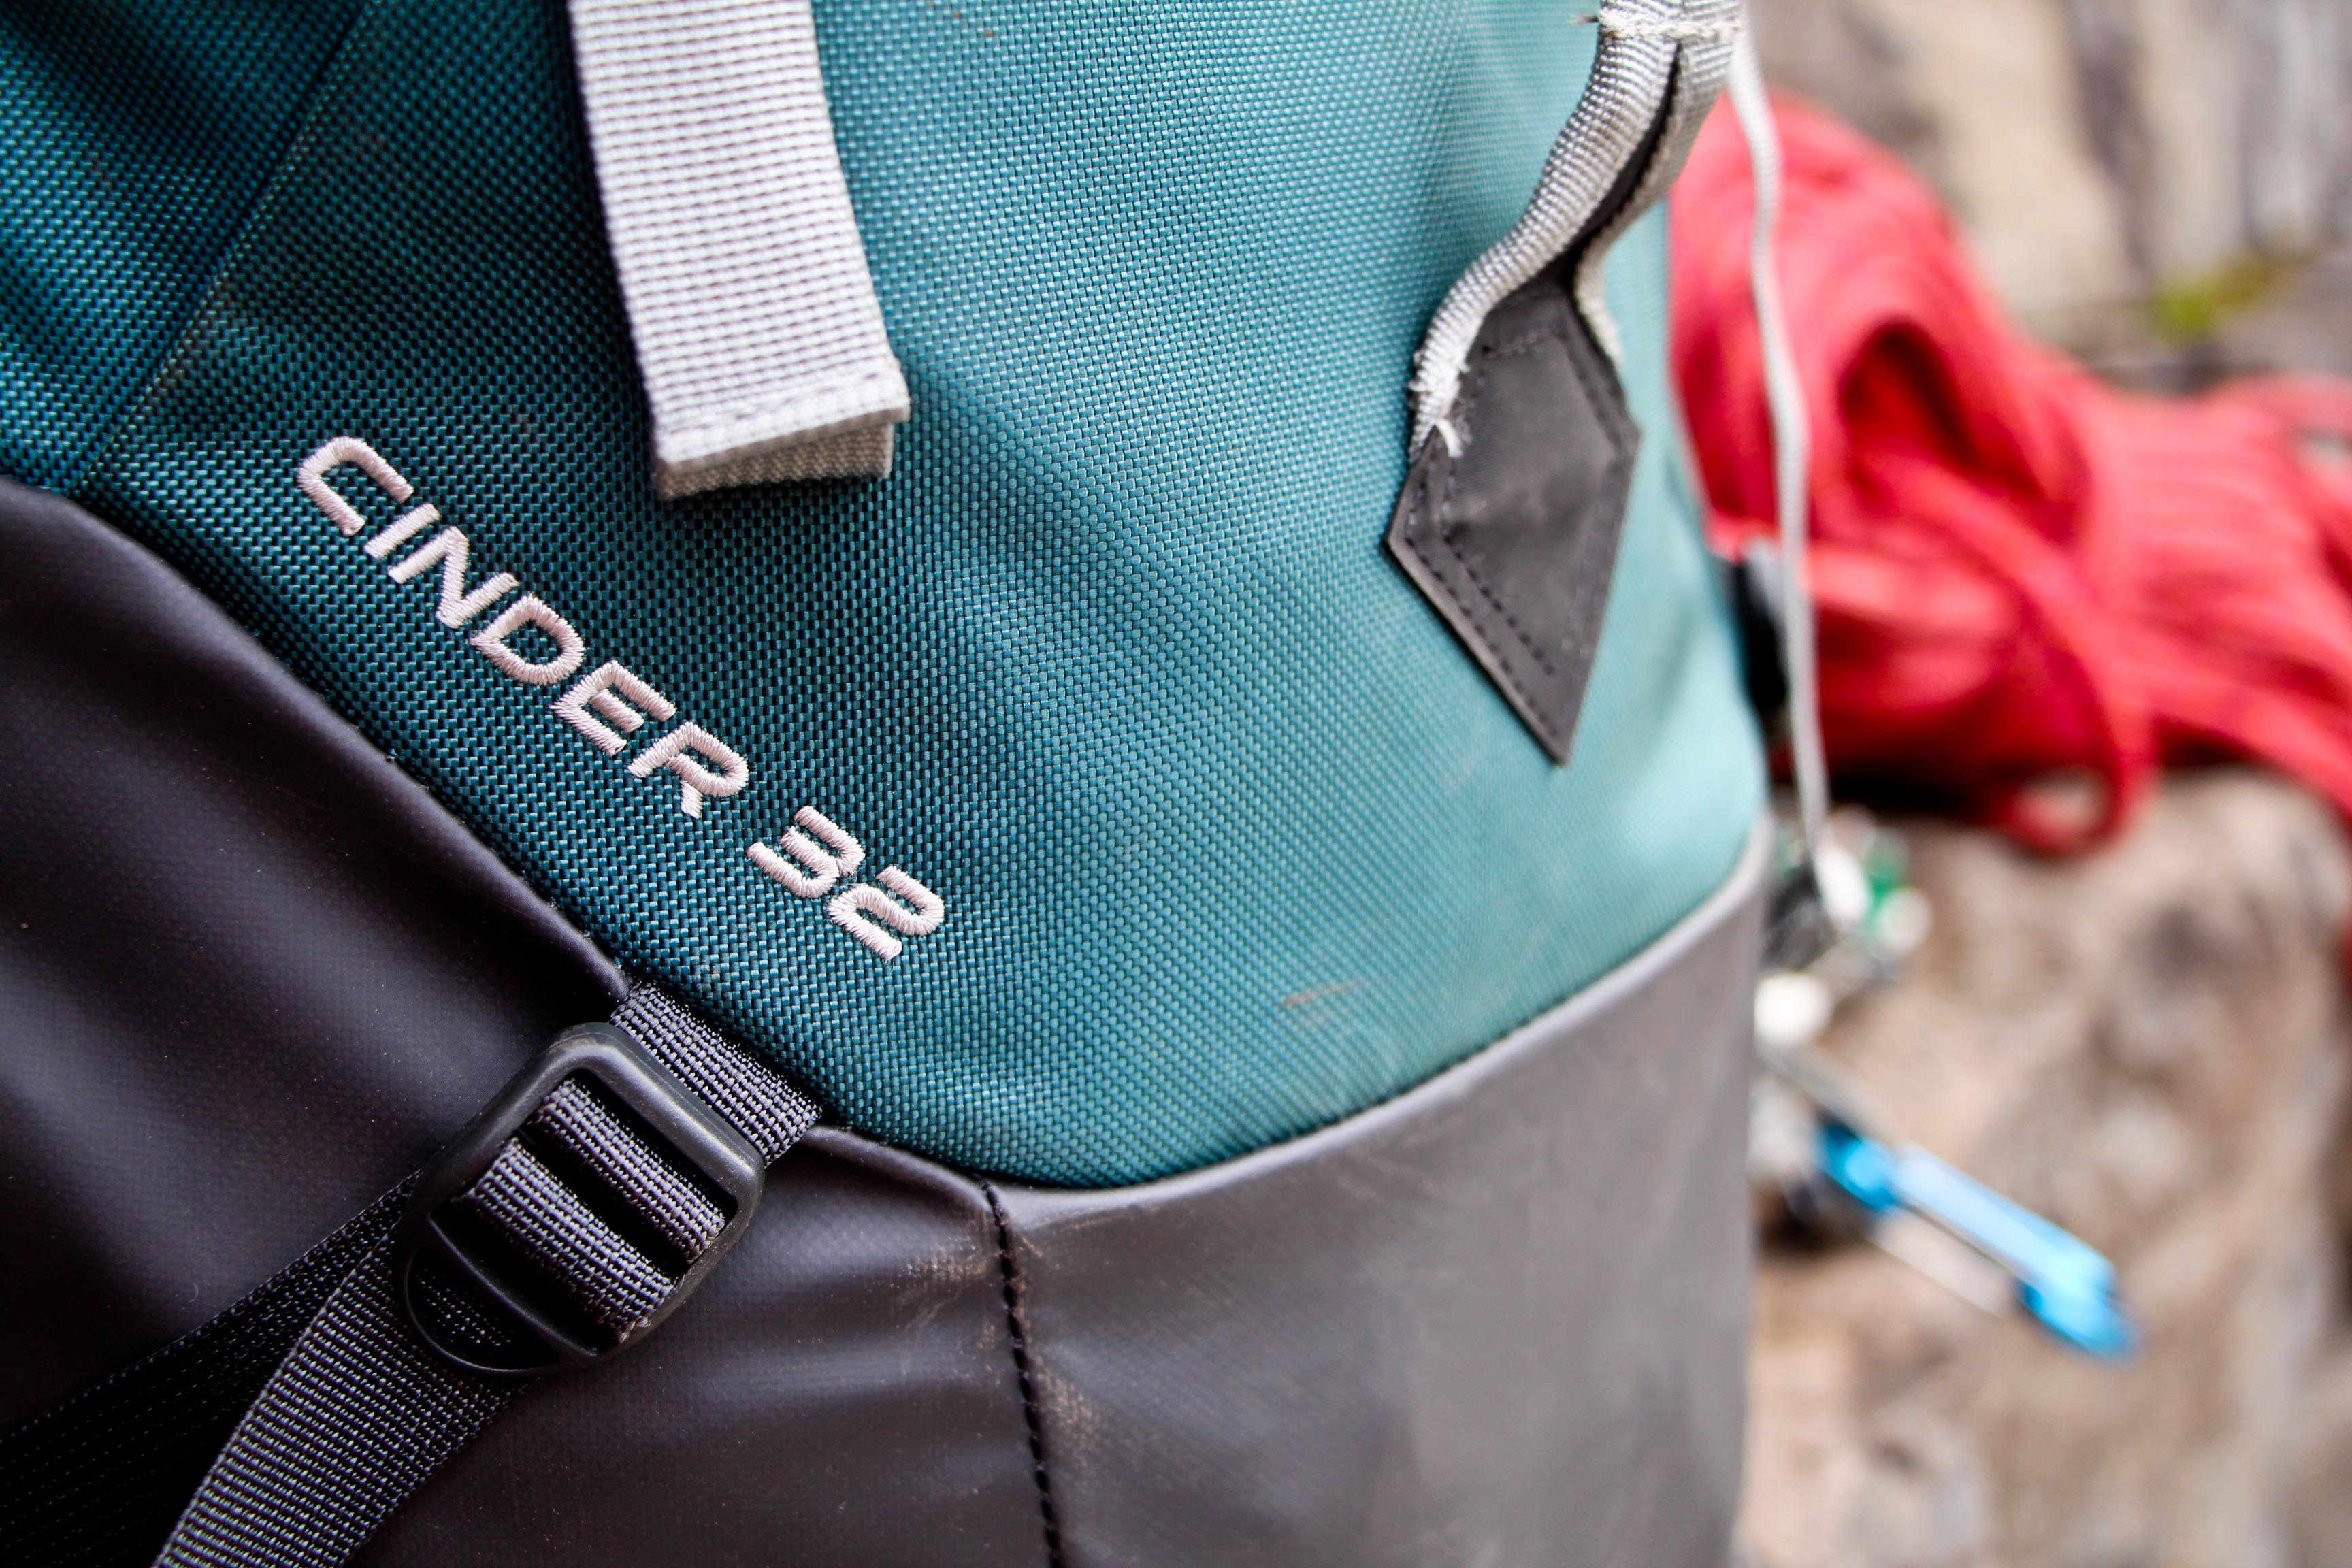 First Look: North Face Cinder 32 Crag Pack Review